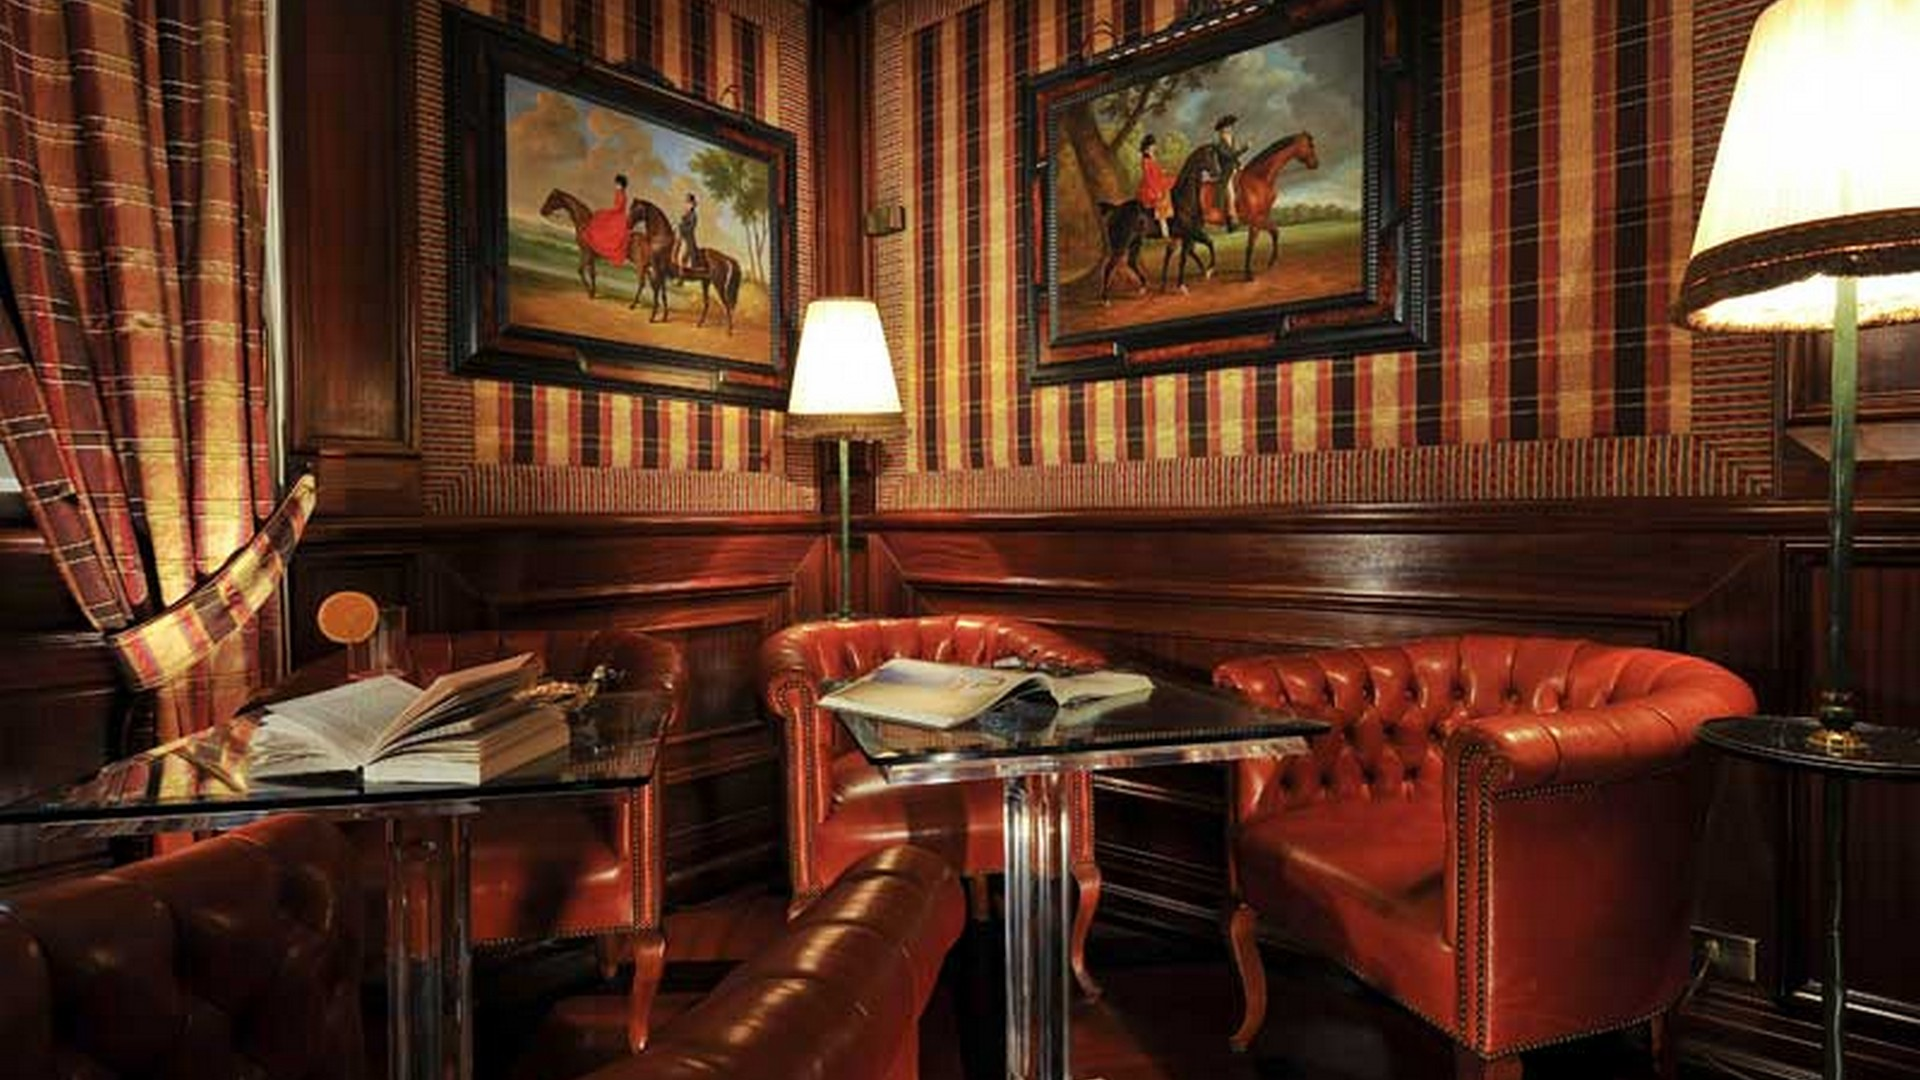 Rome times hotel boutique hotels rome for Best boutique hotels in rome 2015